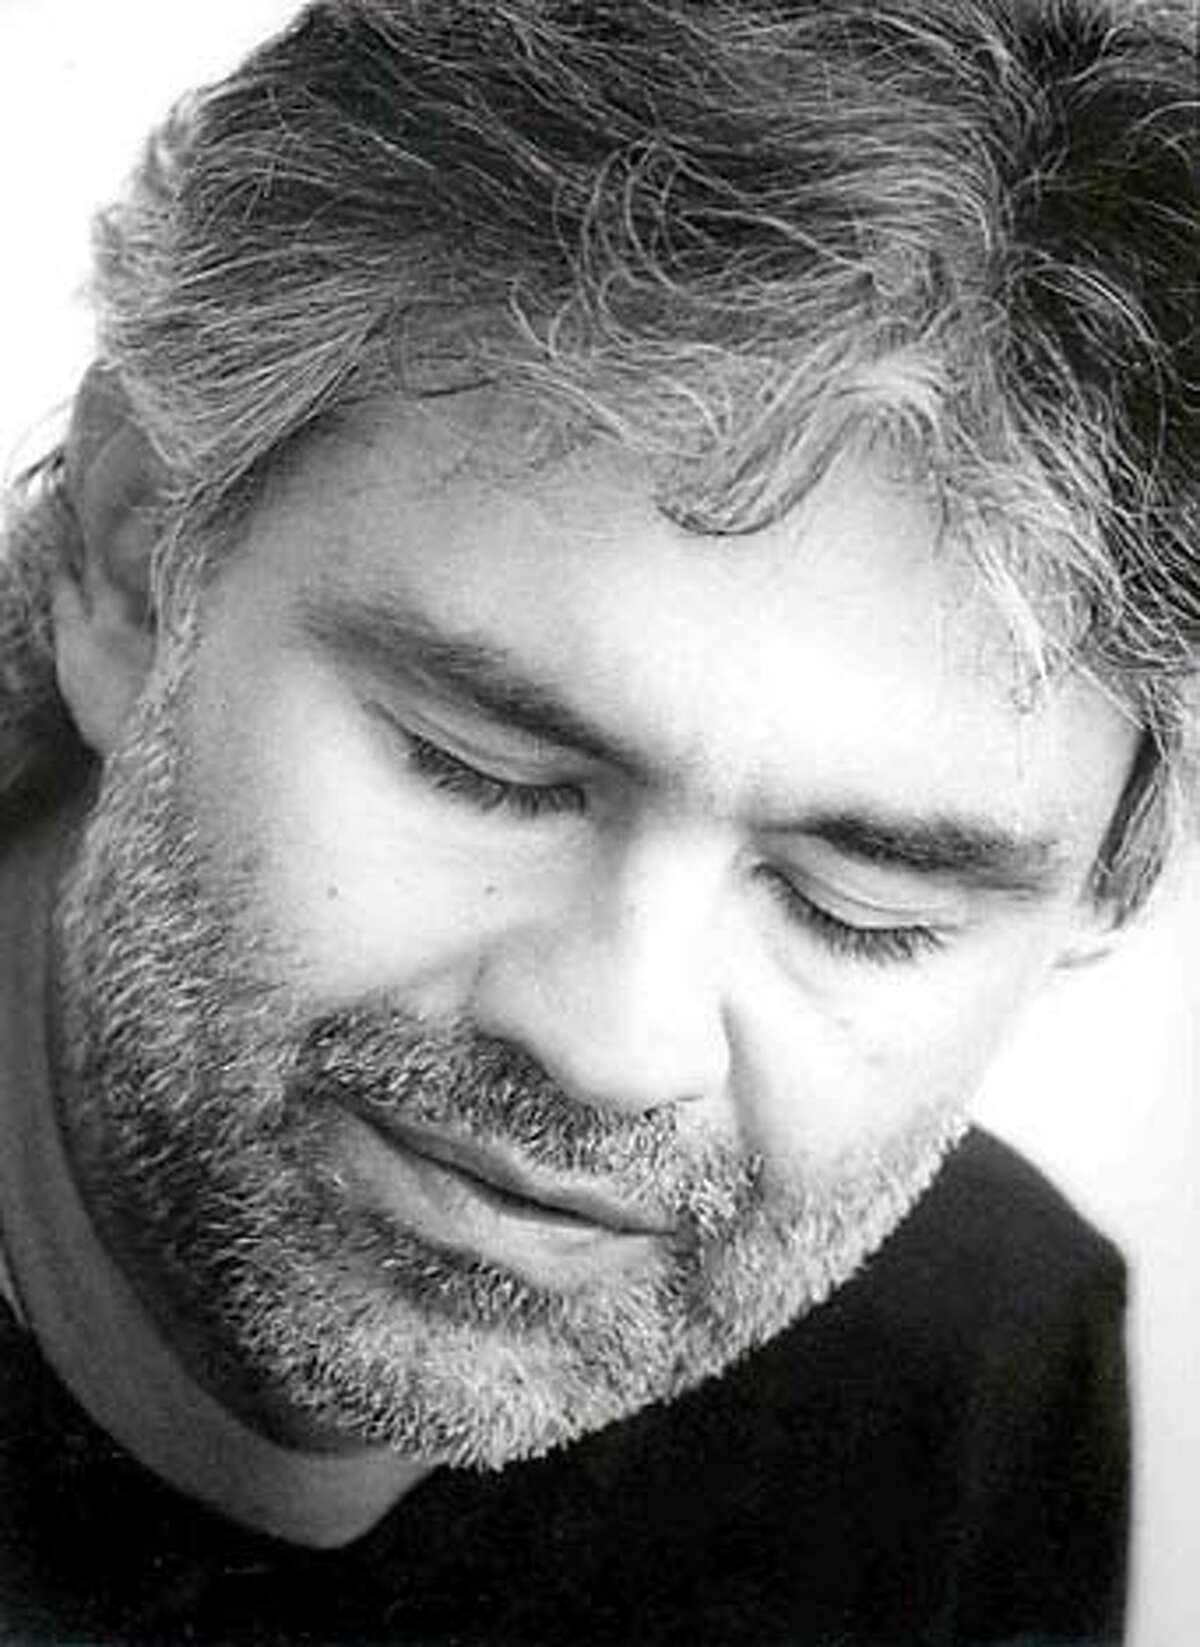 Andrea BocelliRan on: 02-19-2006 Tenor Andrea Bocelli will sing Because We Believe at the closing ceremonies of the Winter Olympics.